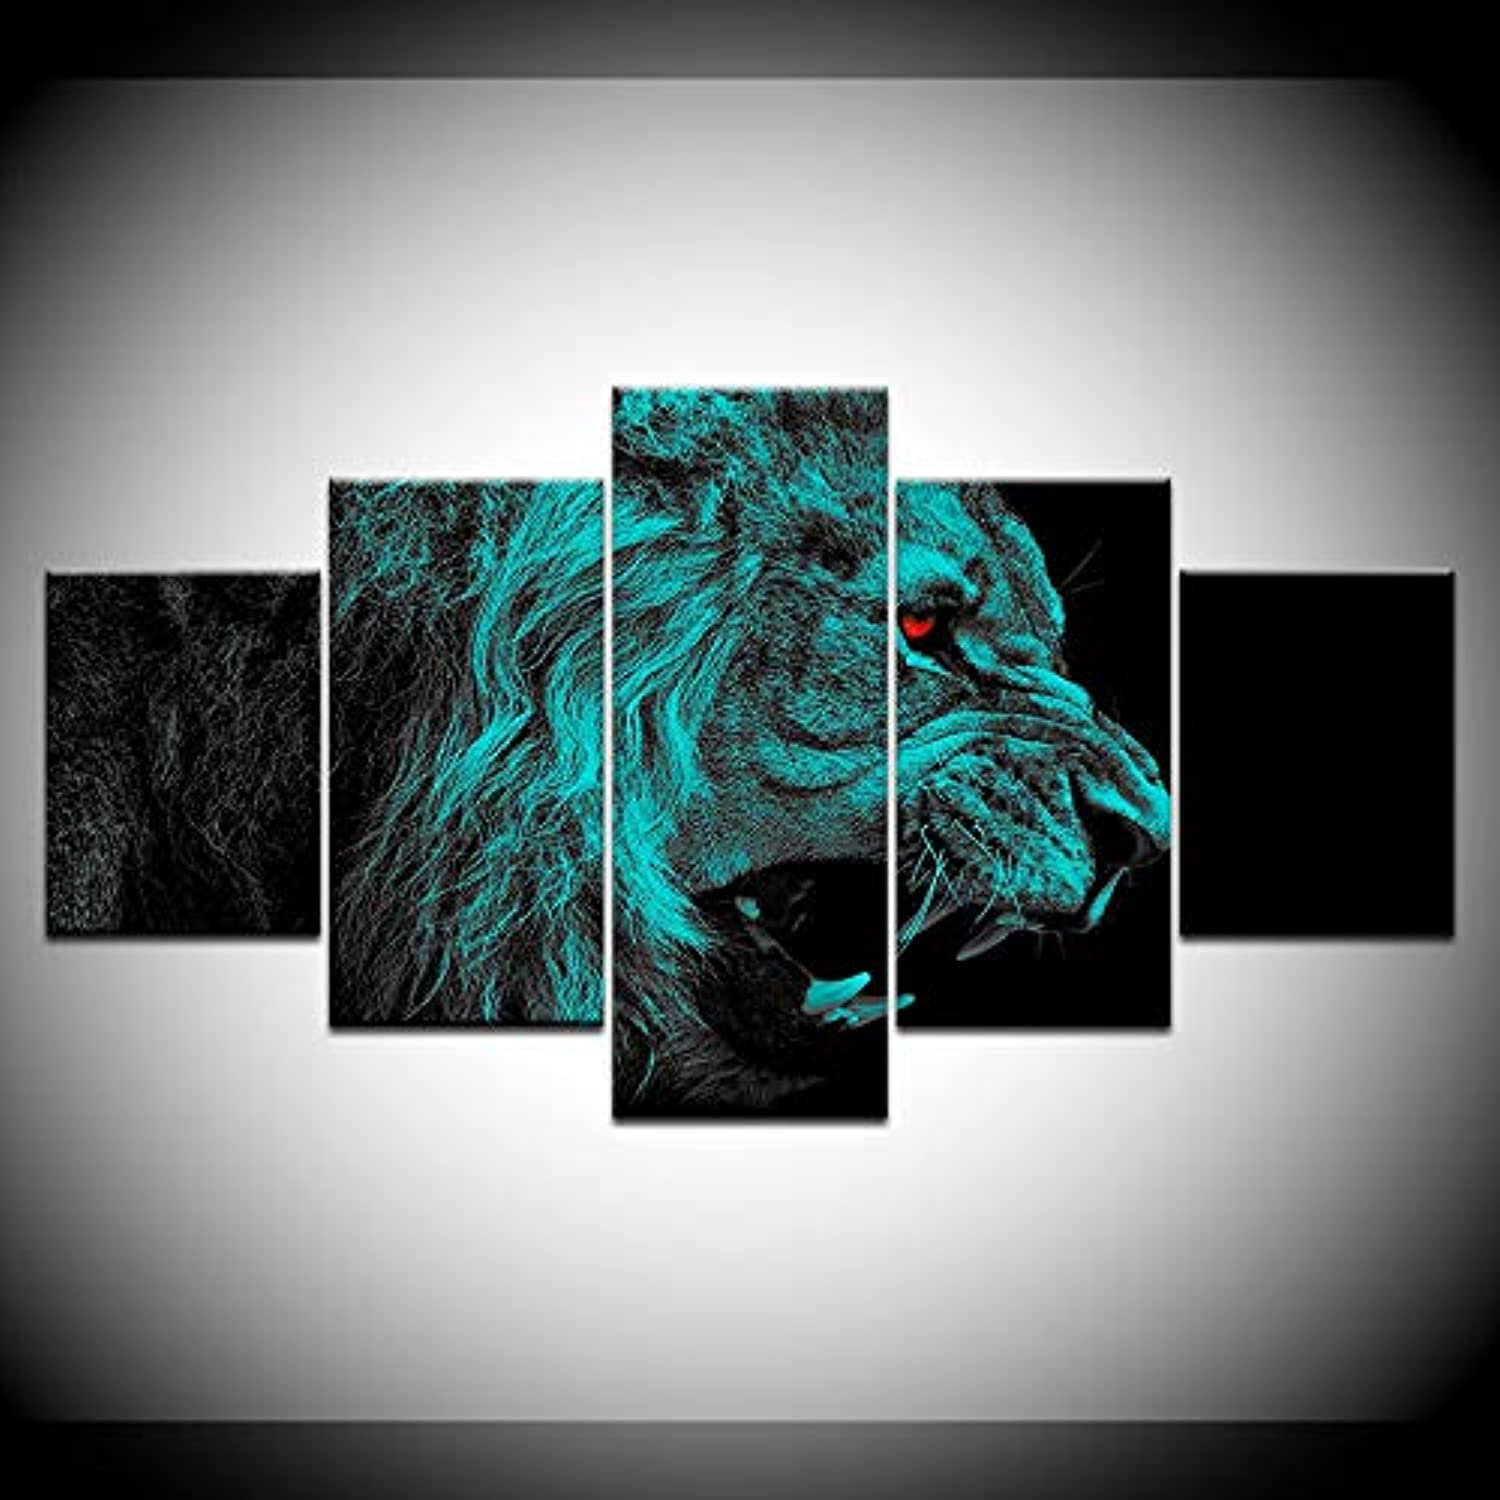 HD Printed Painting Decor Framework Canvas Cloth Decorative Animal Poster 5 Panel Roar Red Eye Lion Wall Art Pictures